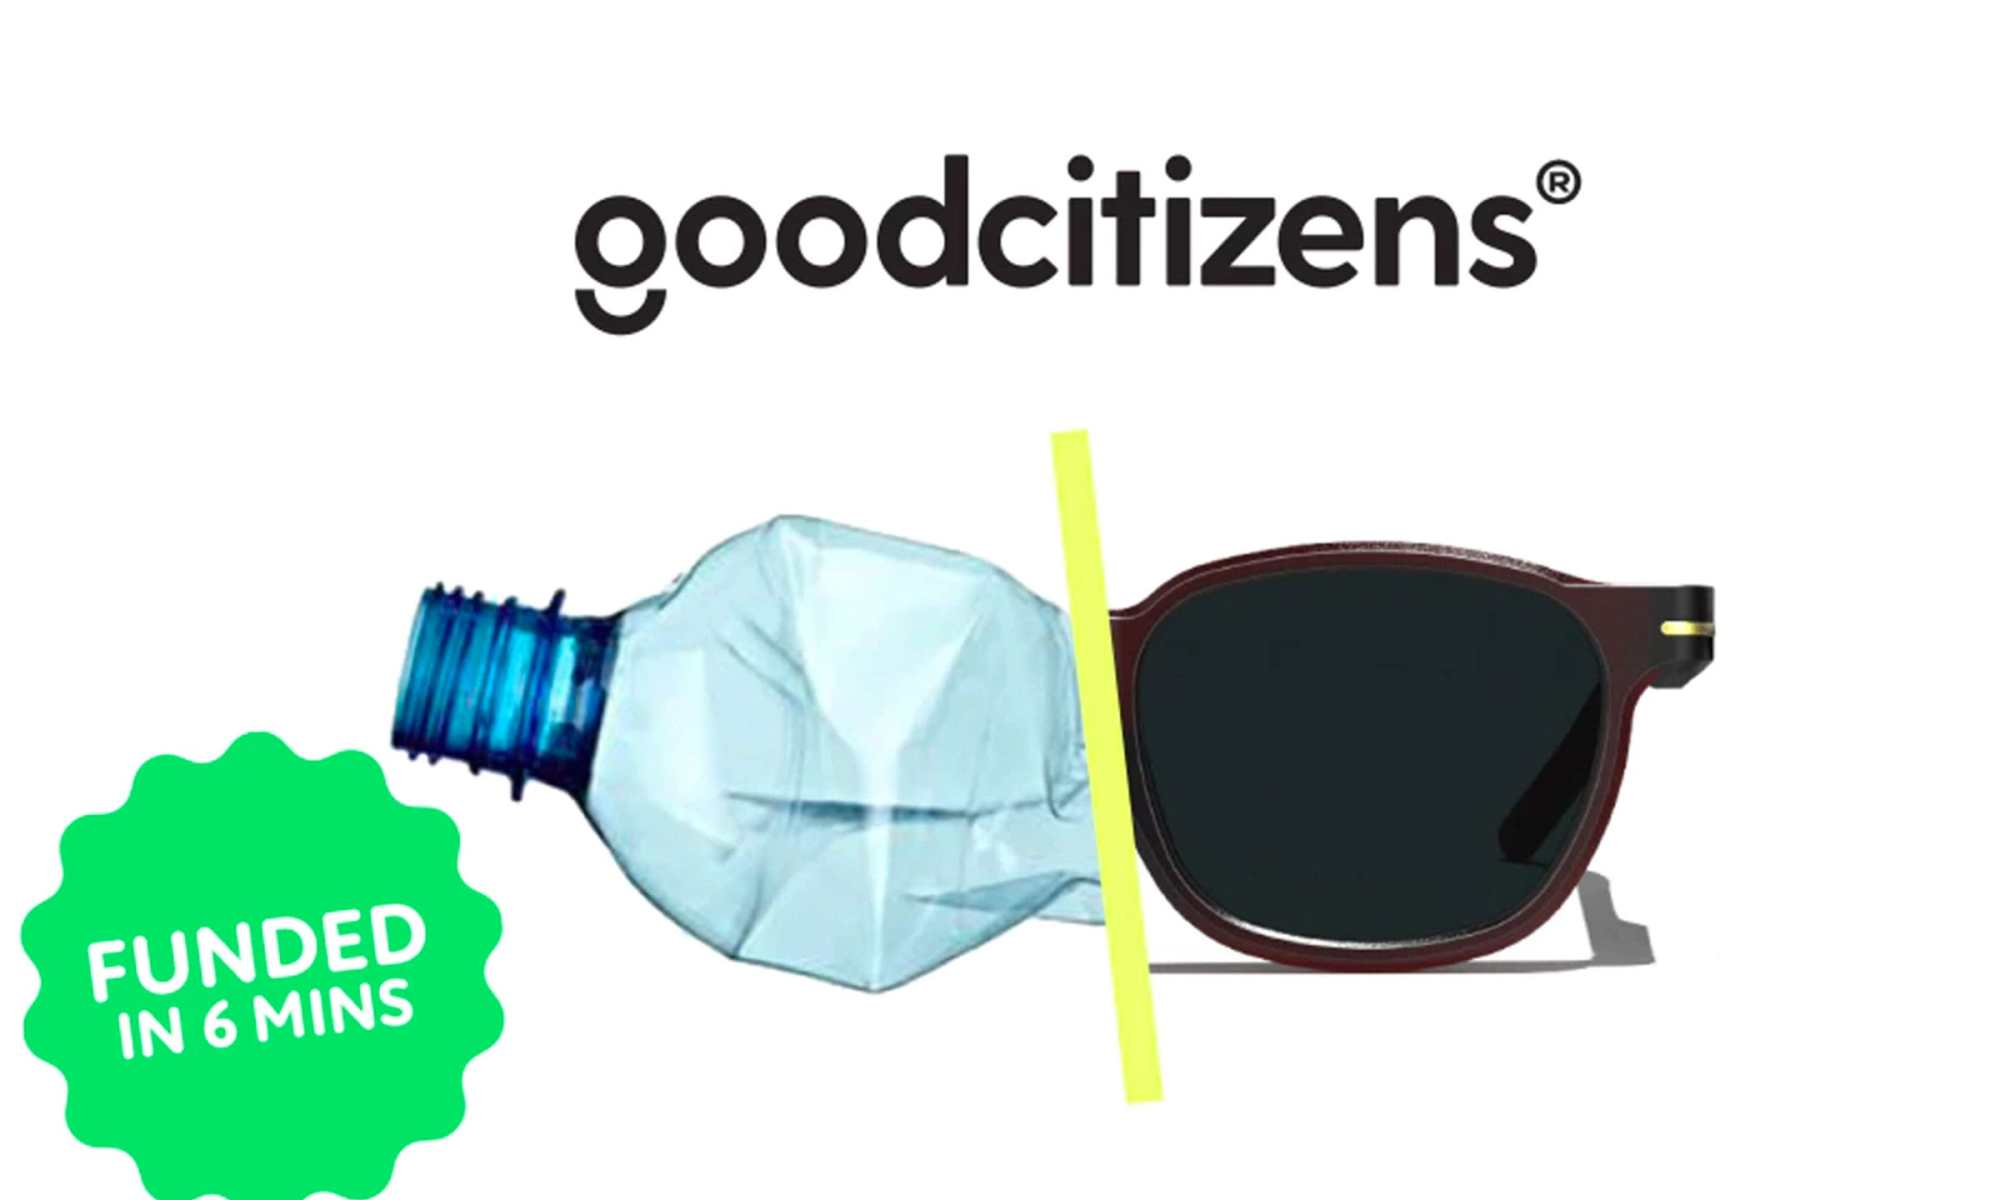 One plastic bottle makes one pair of Good Citizens sunglasses